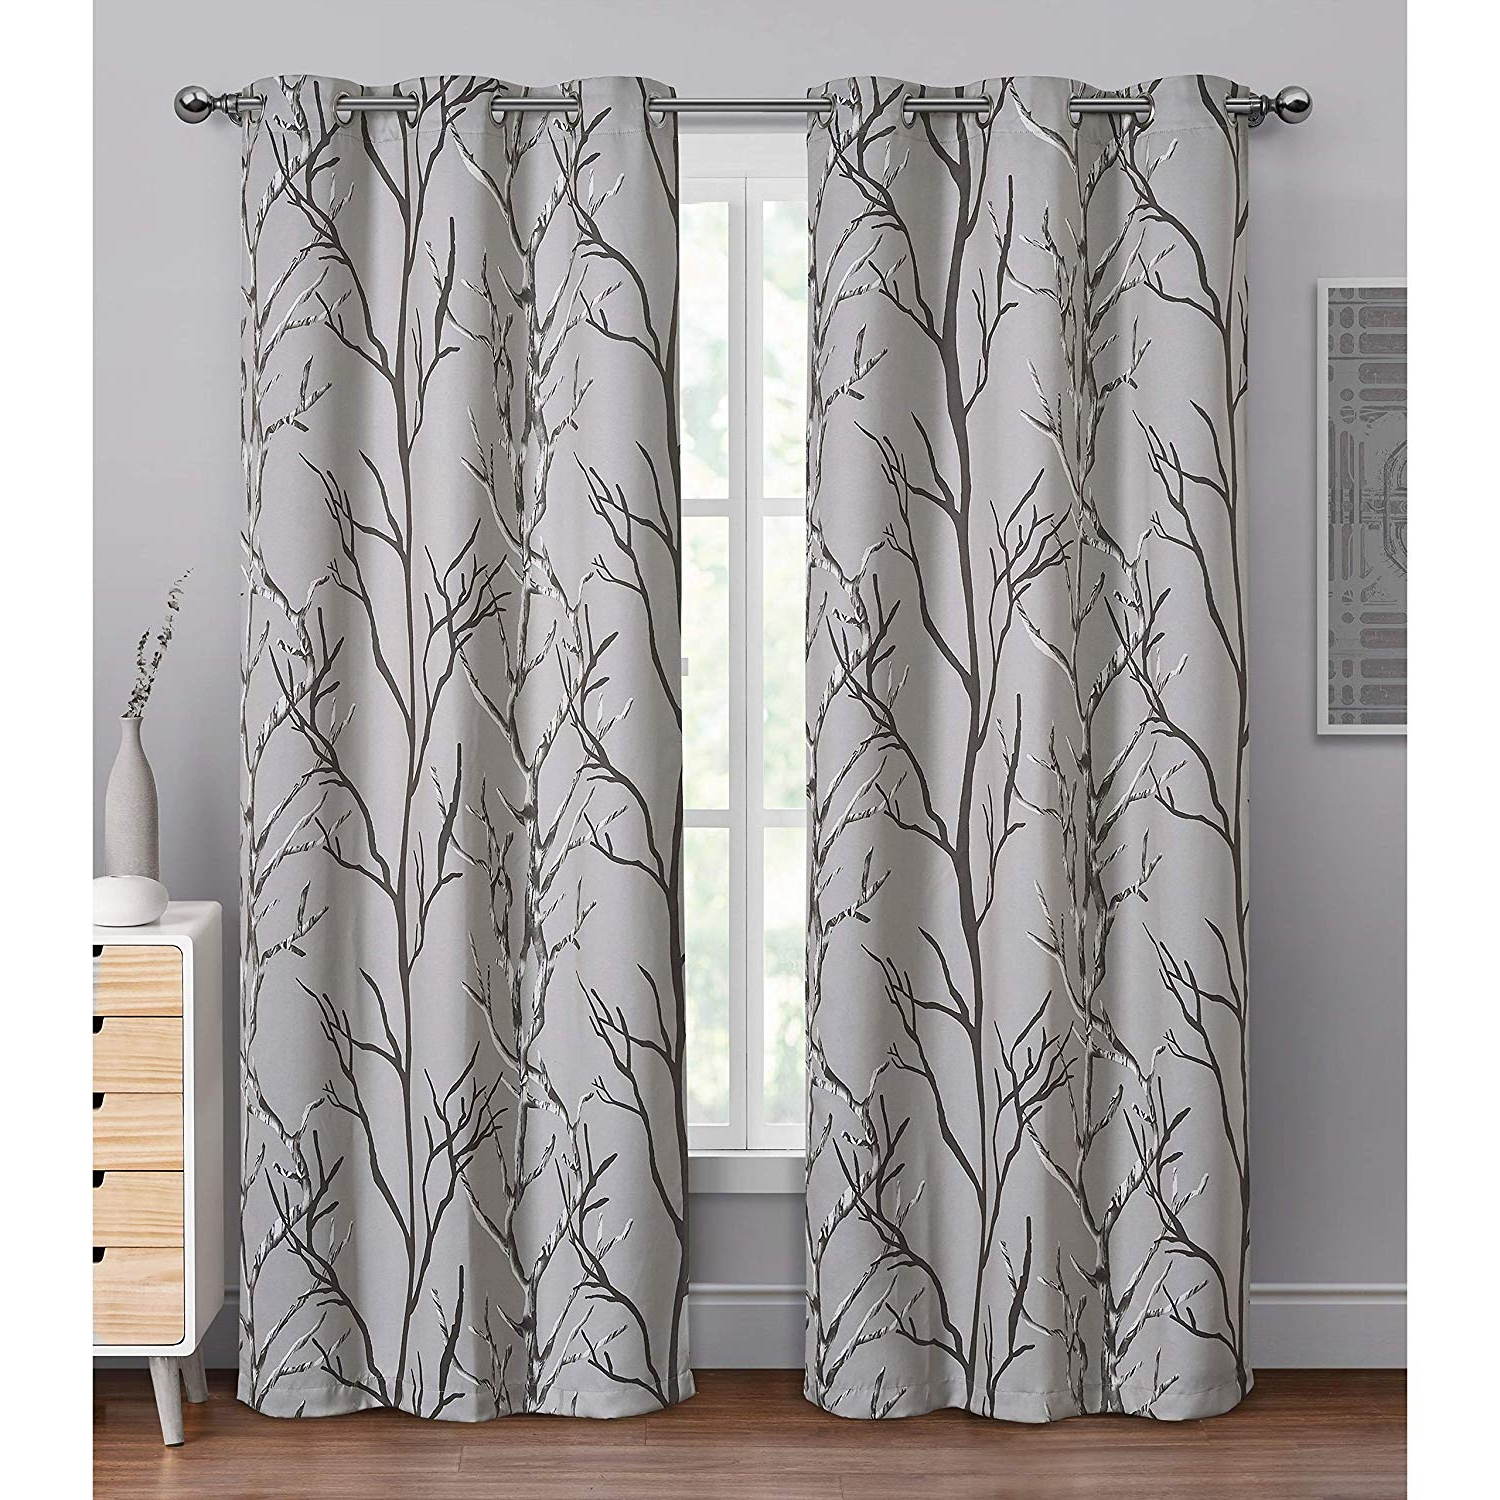 Amazon: Vcny Home Keyes Blackout Single Curtain Panel Pertaining To Newest Keyes Blackout Single Curtain Panels (View 3 of 20)